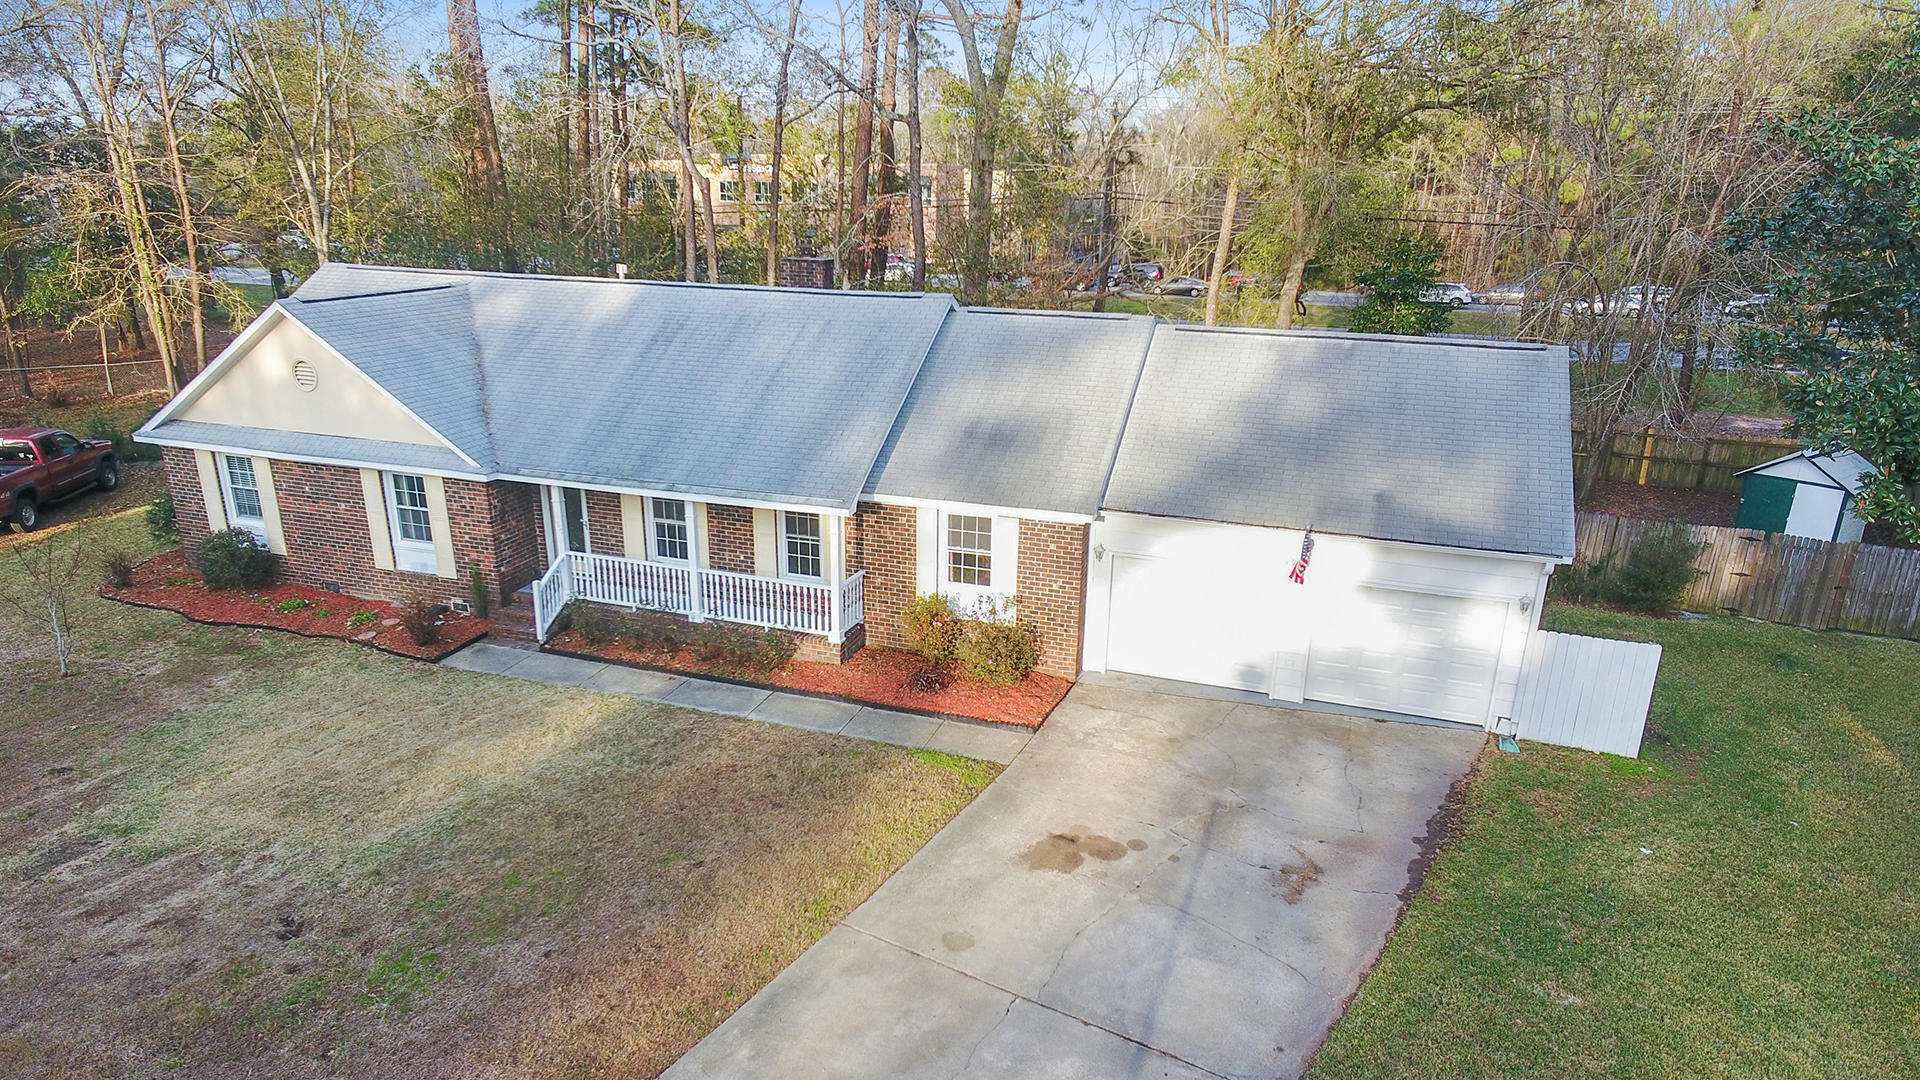 Kings Grant Homes For Sale - 107 Millbrook, Summerville, SC - 24